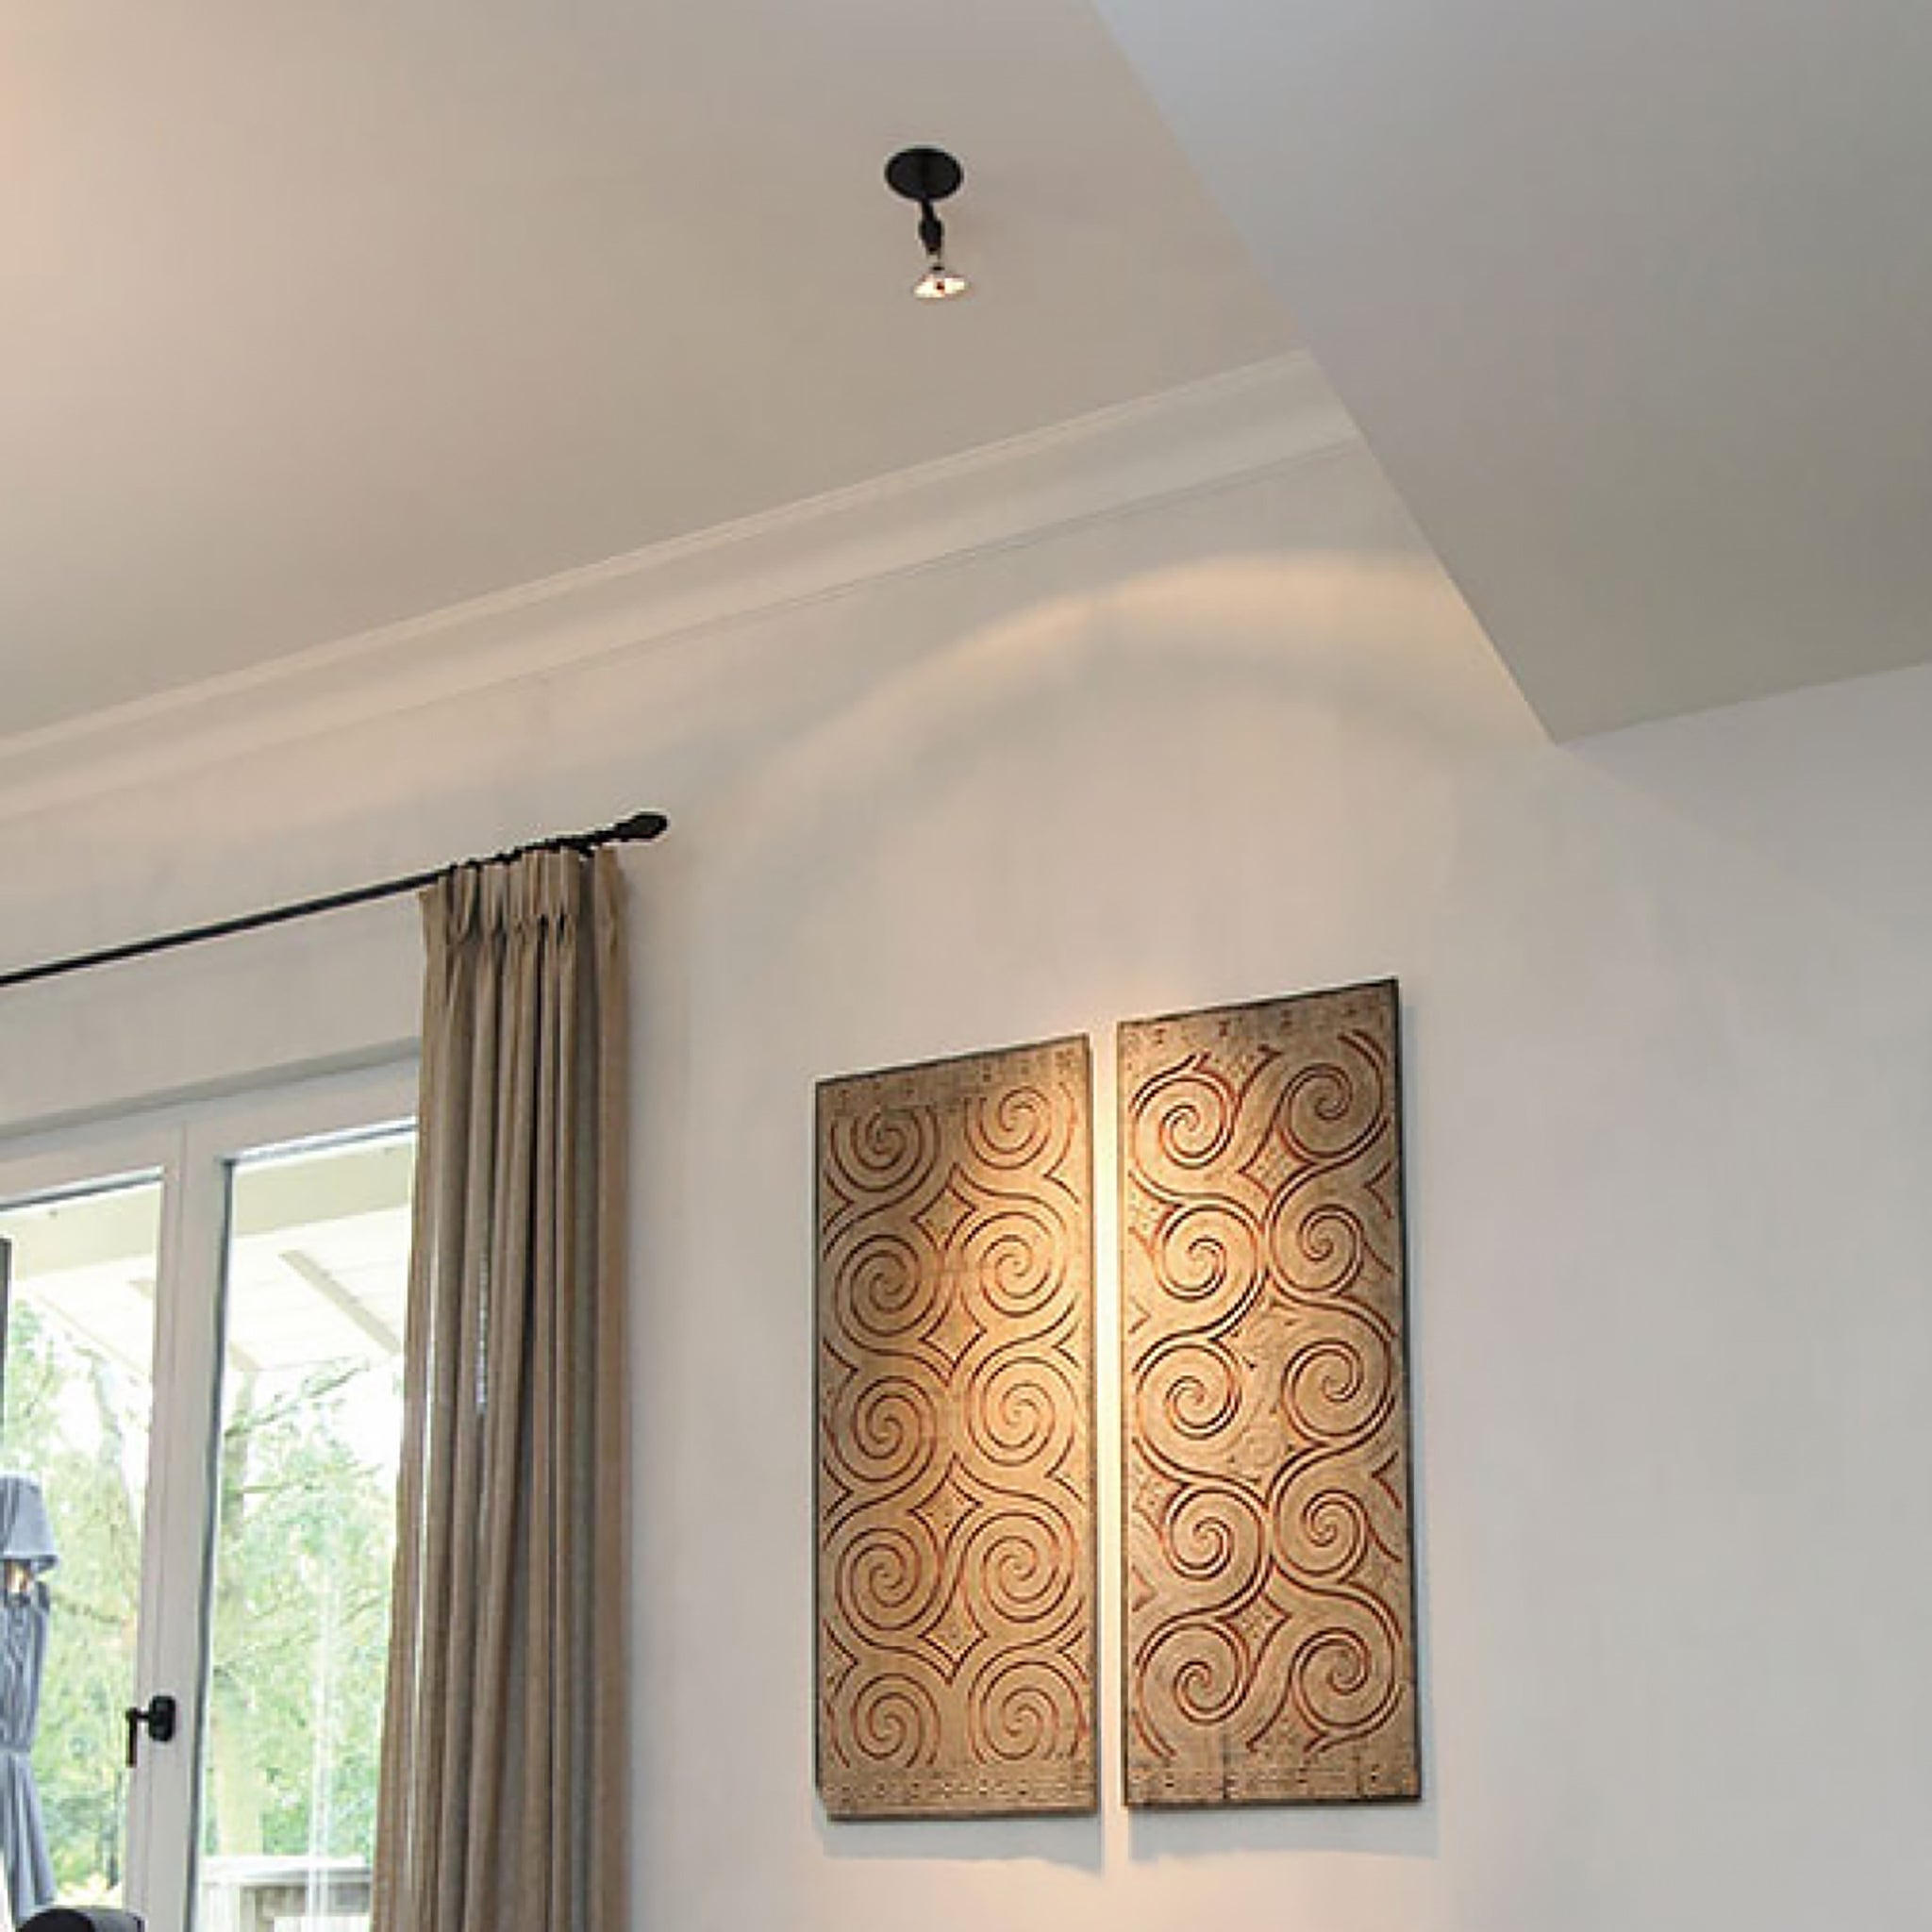 Authentage - spot - ceiling light - bronze - indoor light